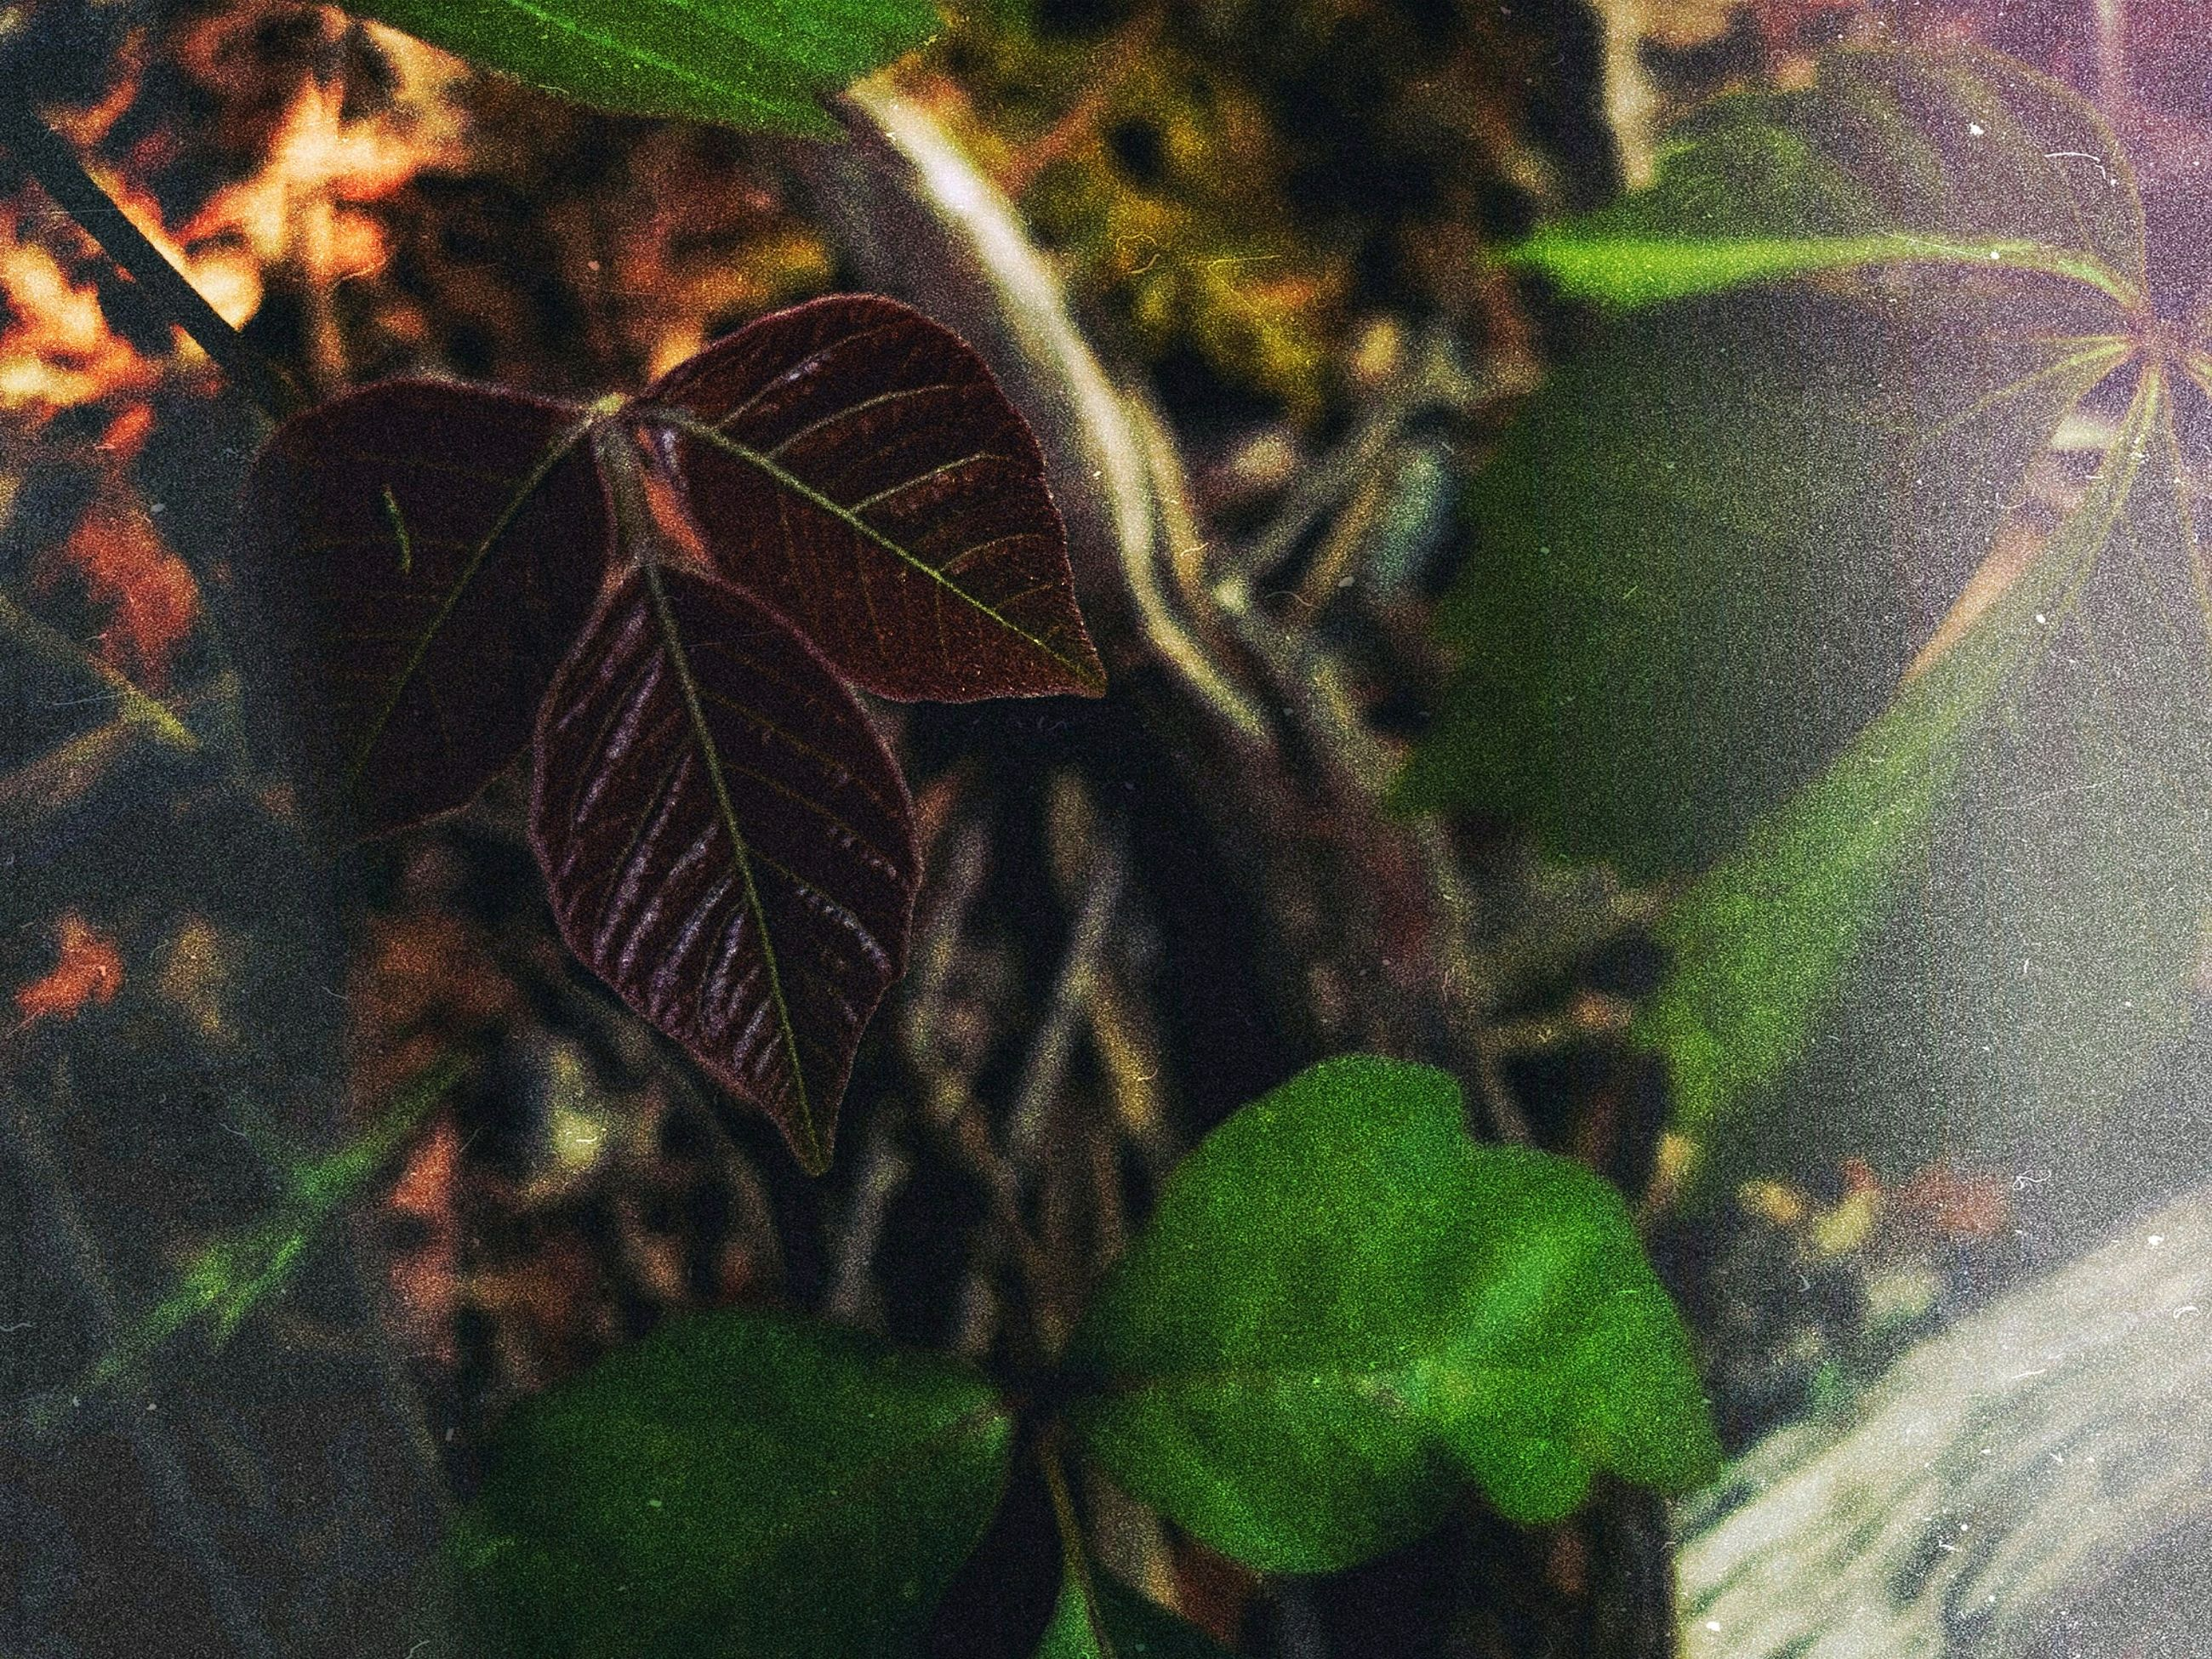 leaf, plant part, plant, close-up, growth, nature, focus on foreground, no people, beauty in nature, day, selective focus, green color, outdoors, tranquility, fragility, autumn, natural pattern, high angle view, vulnerability, change, leaves